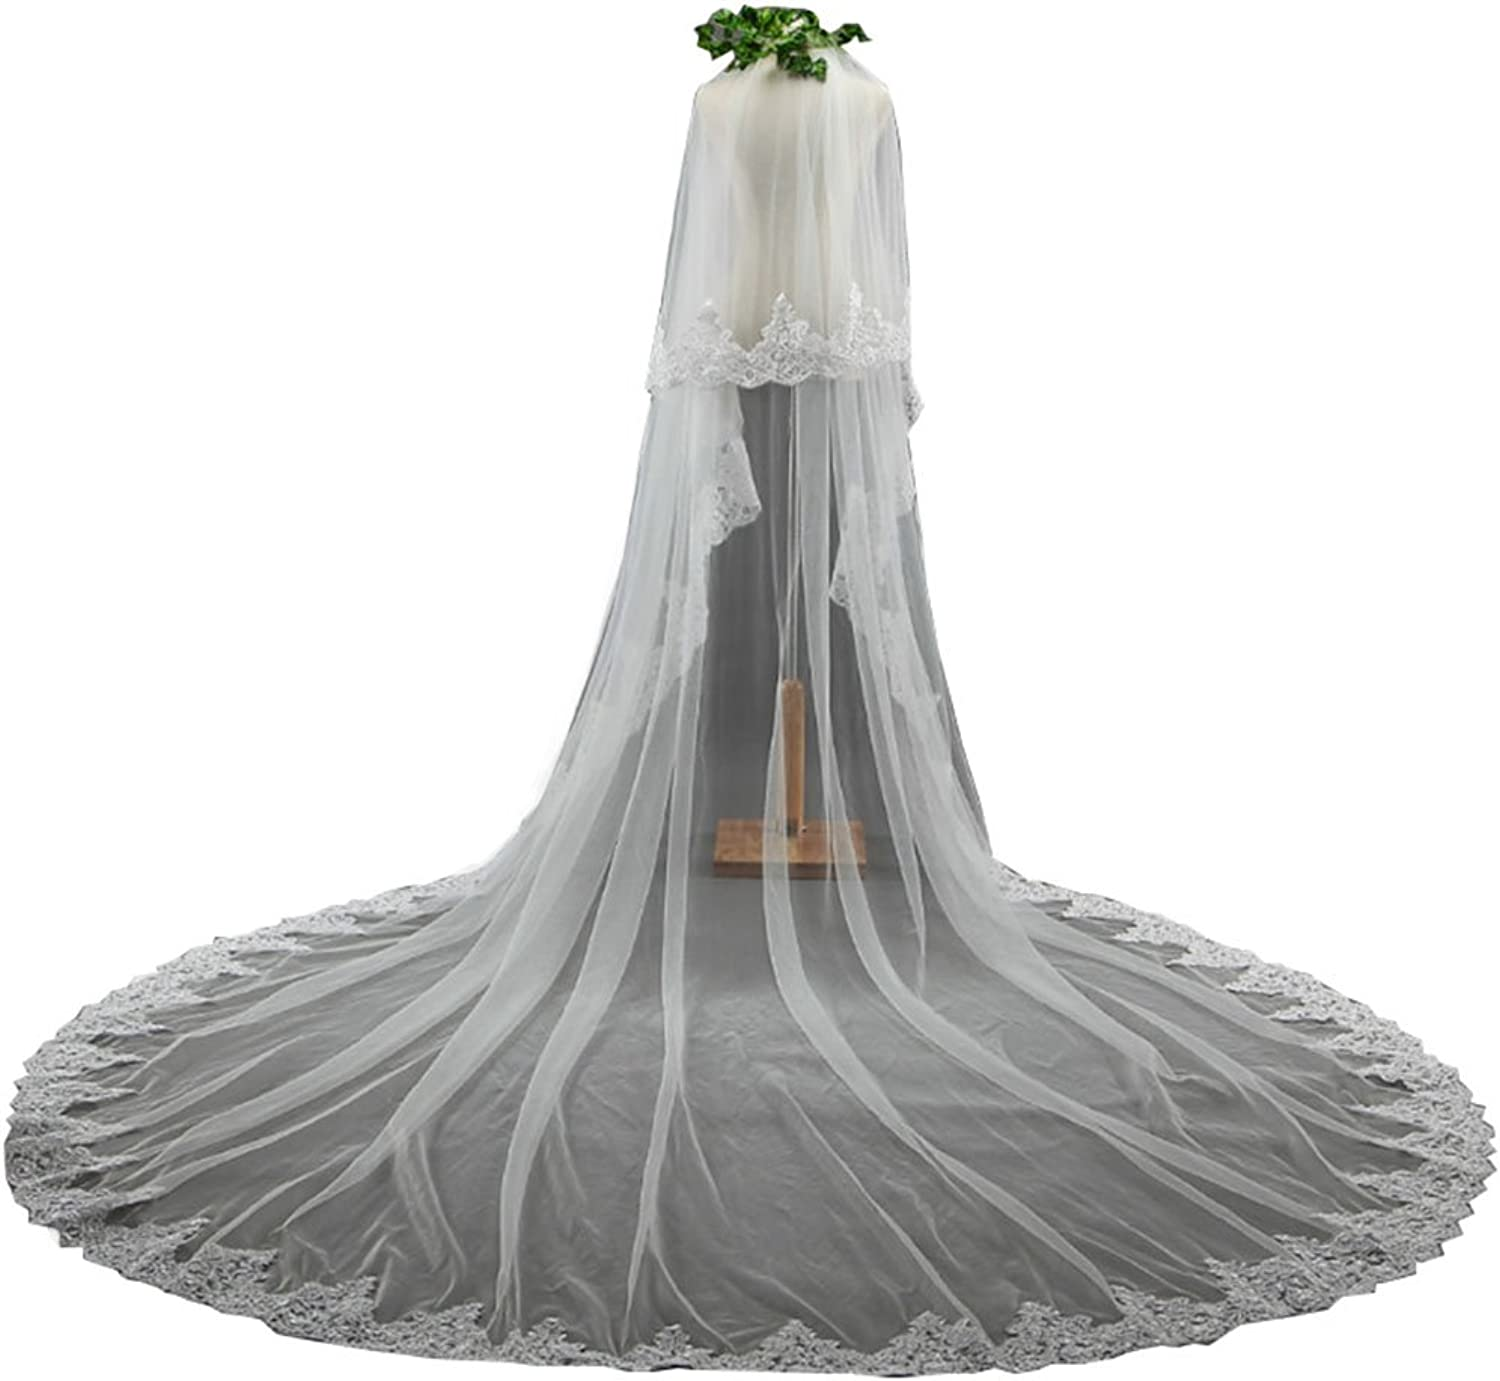 Beautydress 2T White Ivory Appliqued Lace Edge Long Cathedral Wedding Veils Free Comb BP078